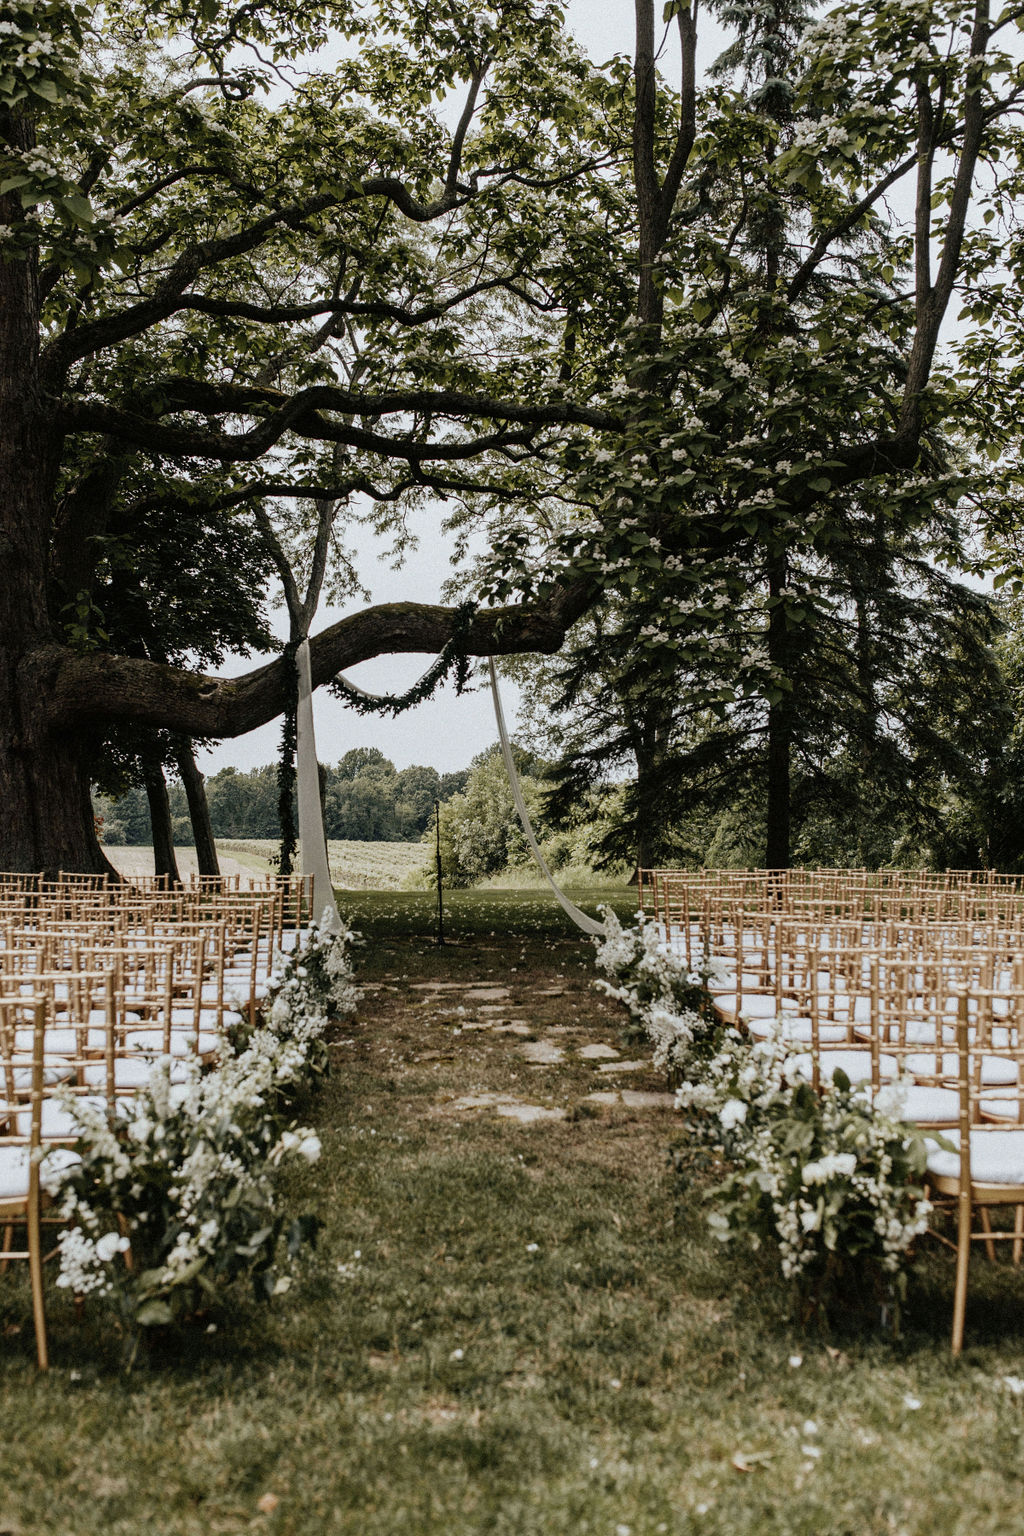 The Hidden Vineyard Wedding Barn ceremony tree.